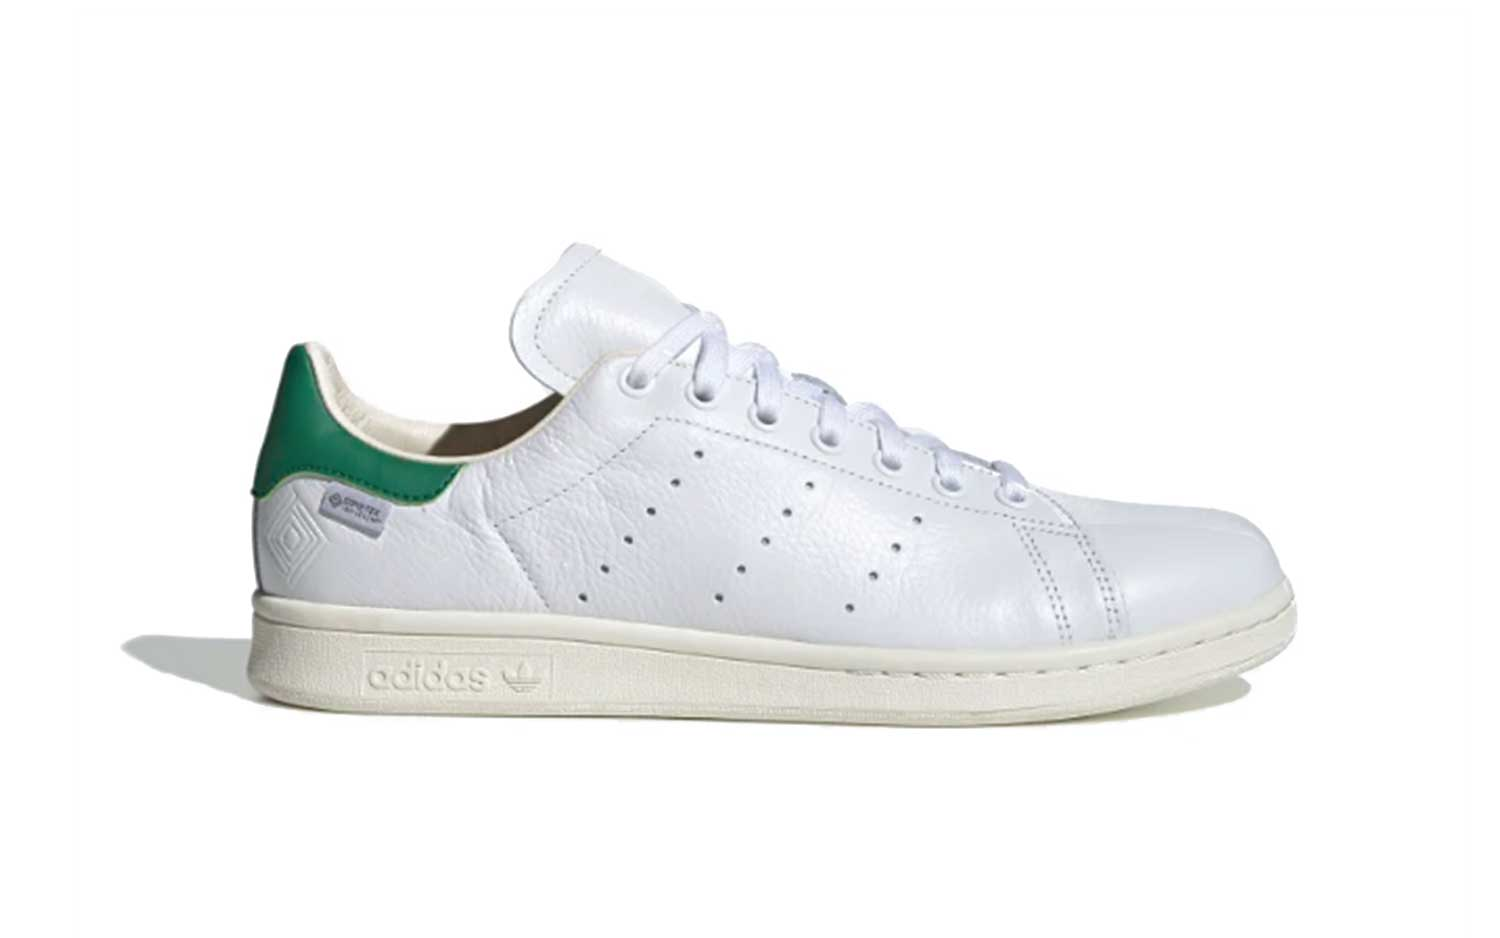 Adidas Stan Smith x GORE-TEX, $120